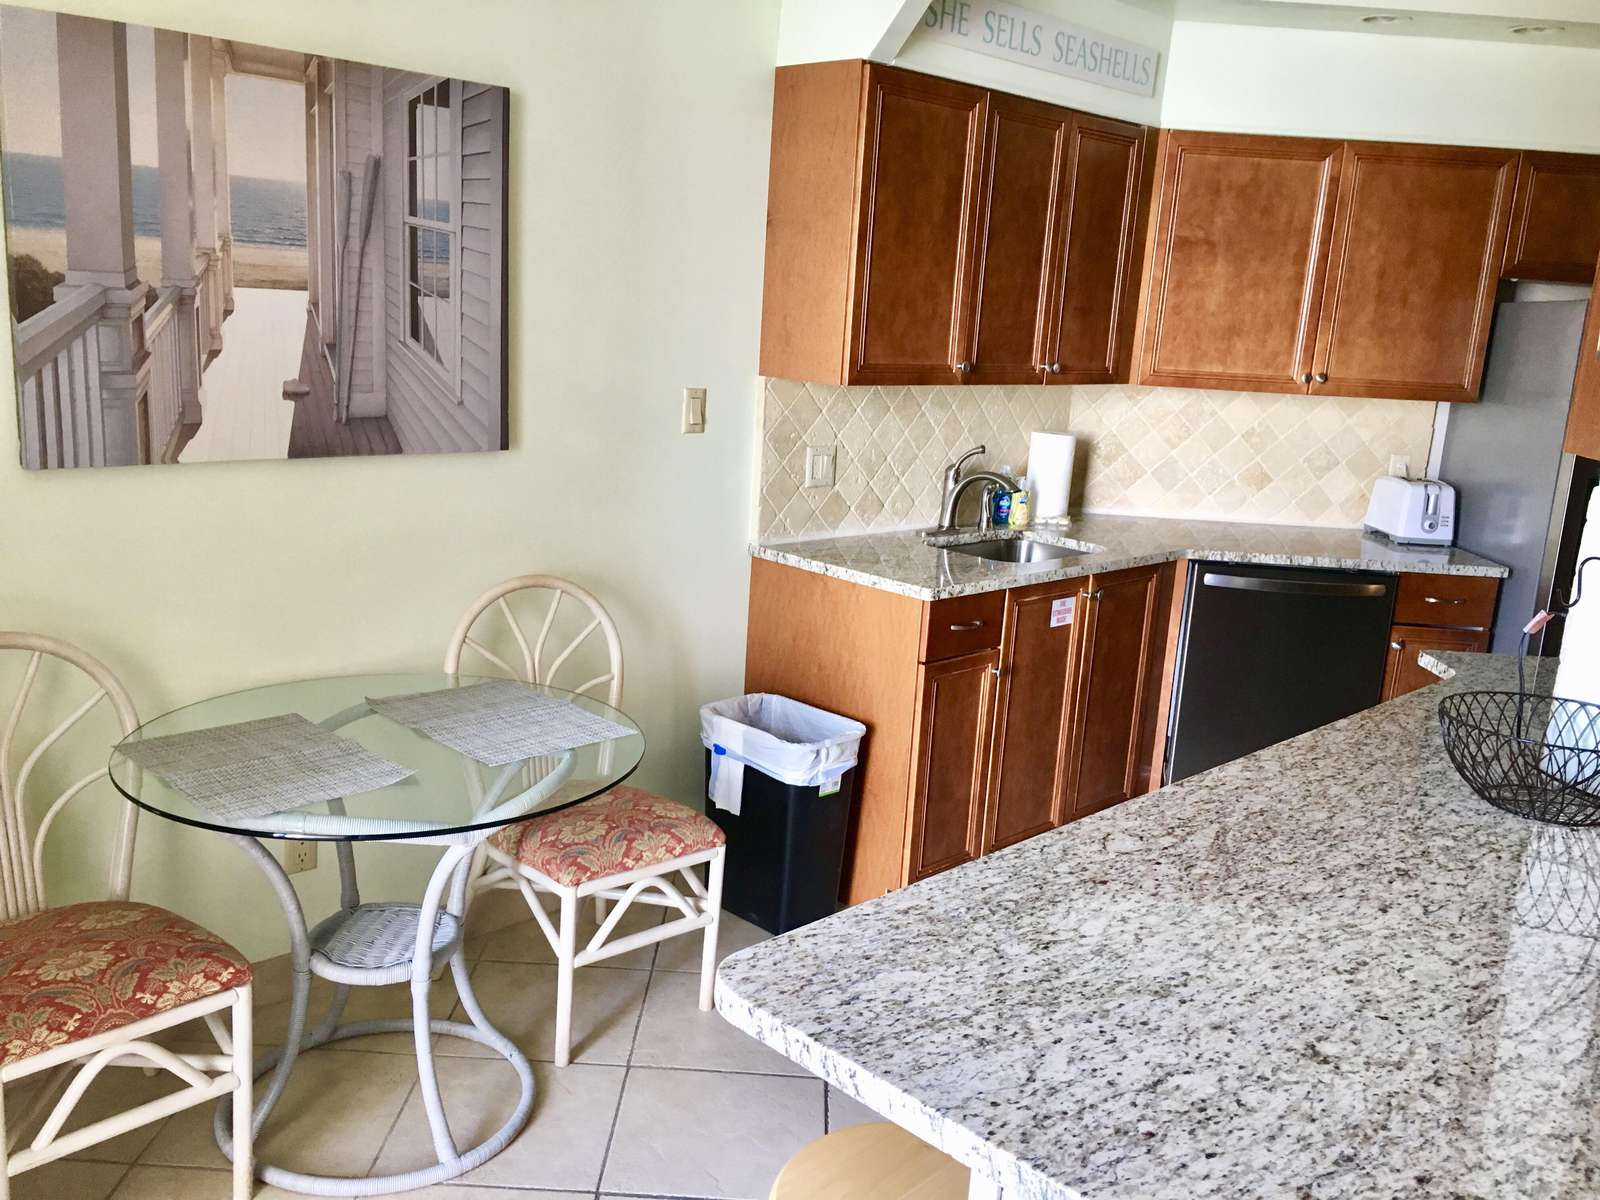 The kitchen flows into the living room with an eat-in bar area and balcony access.